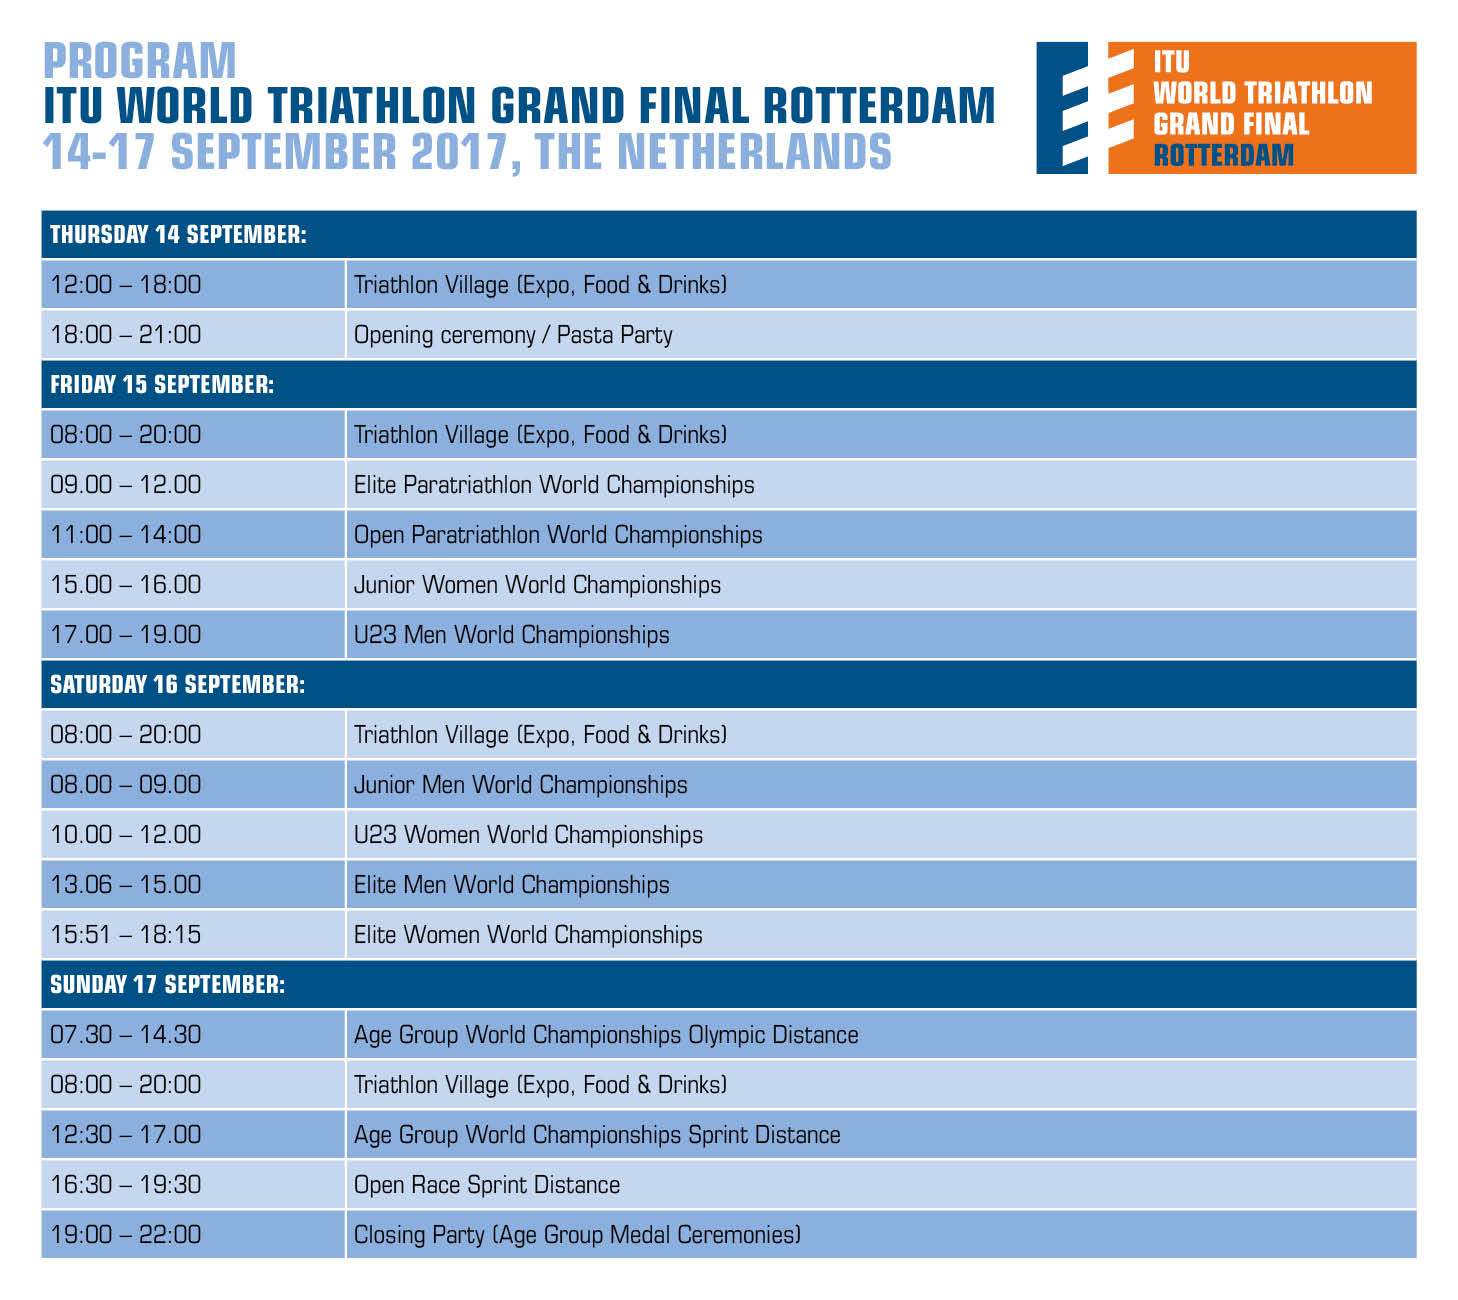 Program_ITU_Grand_Final_Total-website.jp